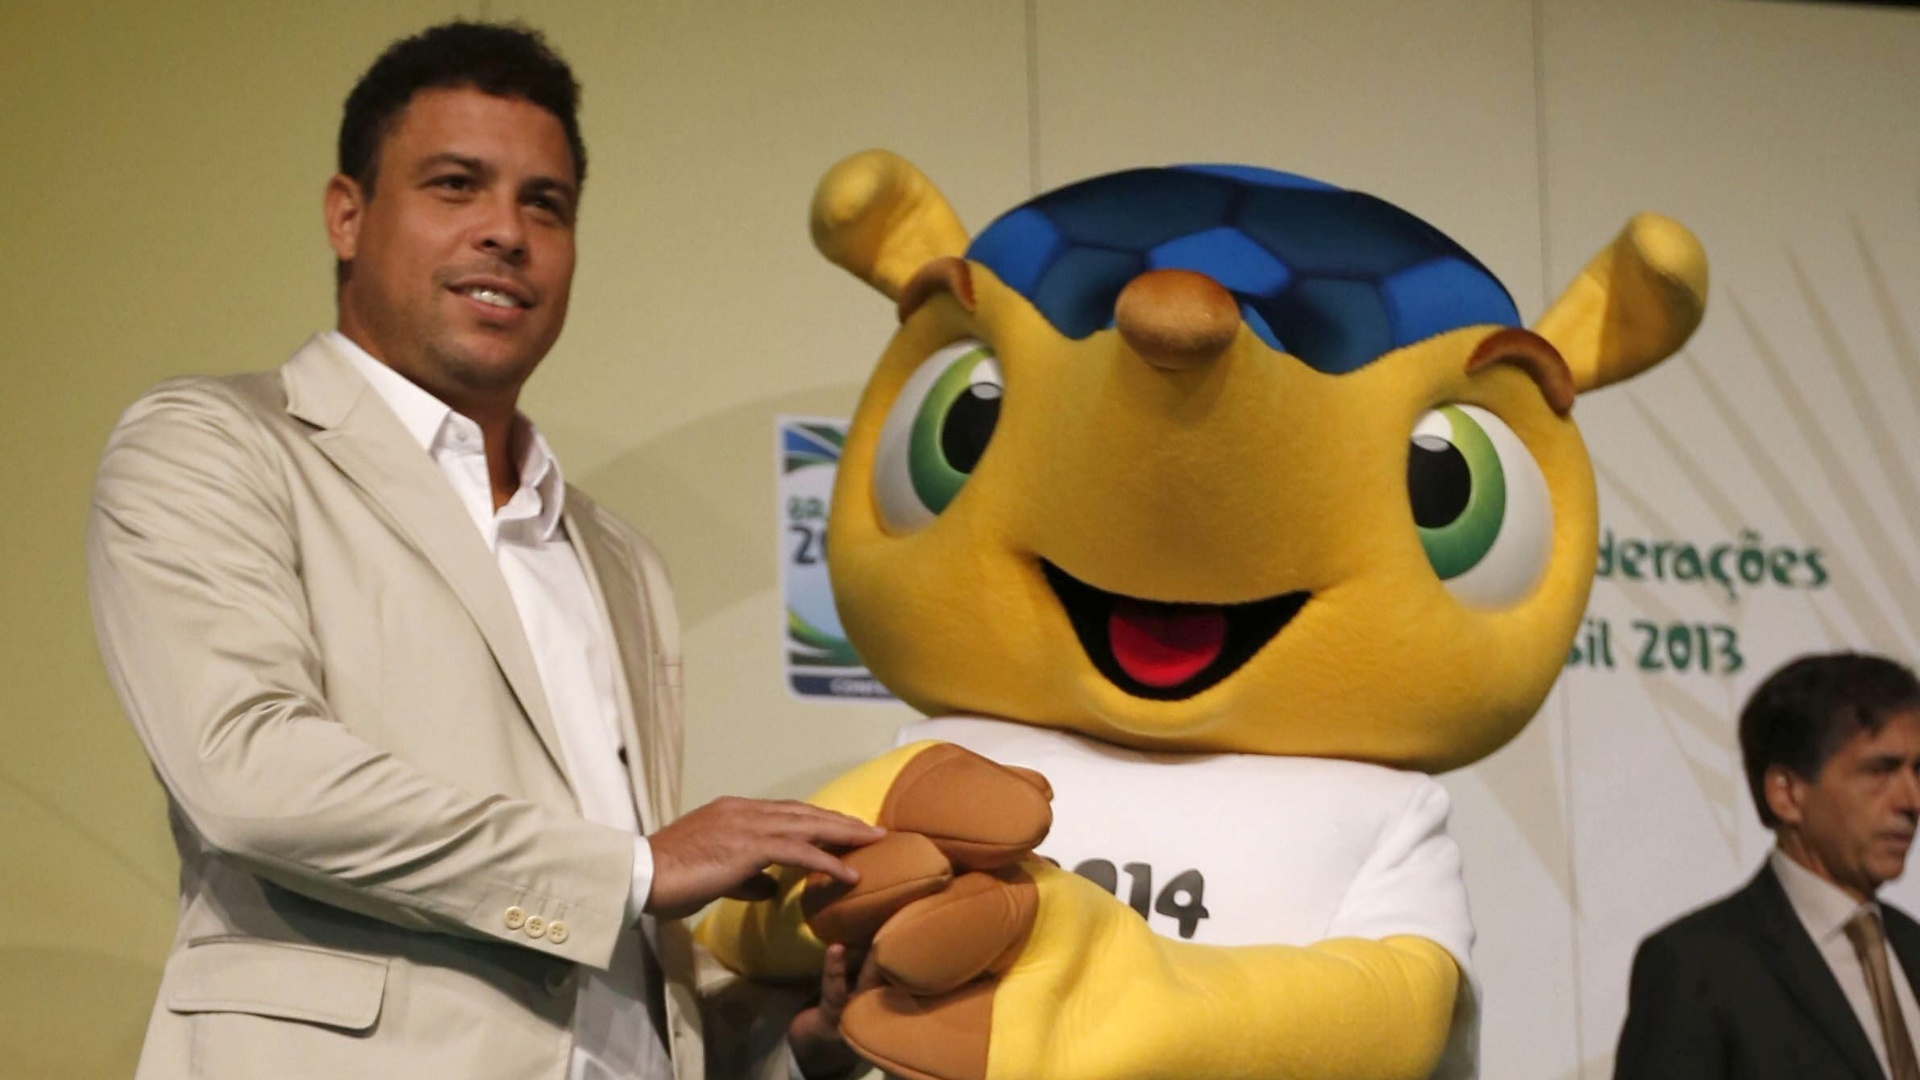 23.fev.2013 - Ronaldo, membro do COL, e o mascote Fuleco participam de evento promocional da Copa das Confederaes 2013, em Madri (Espanha)